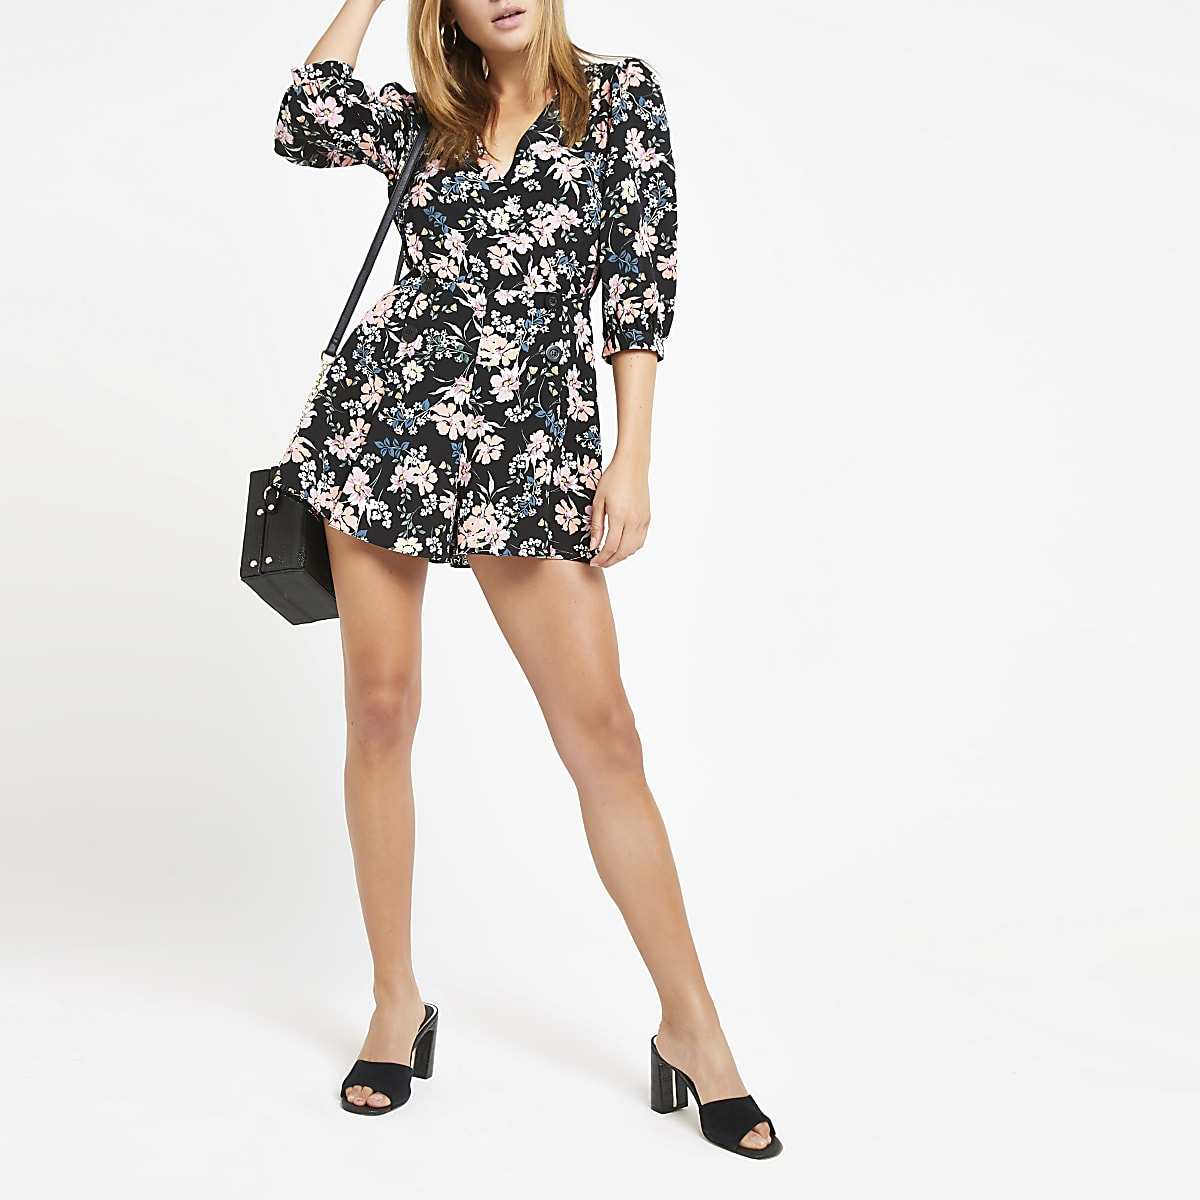 59d047c5ee7 Black floral double breasted playsuit - Playsuits - Playsuits ...